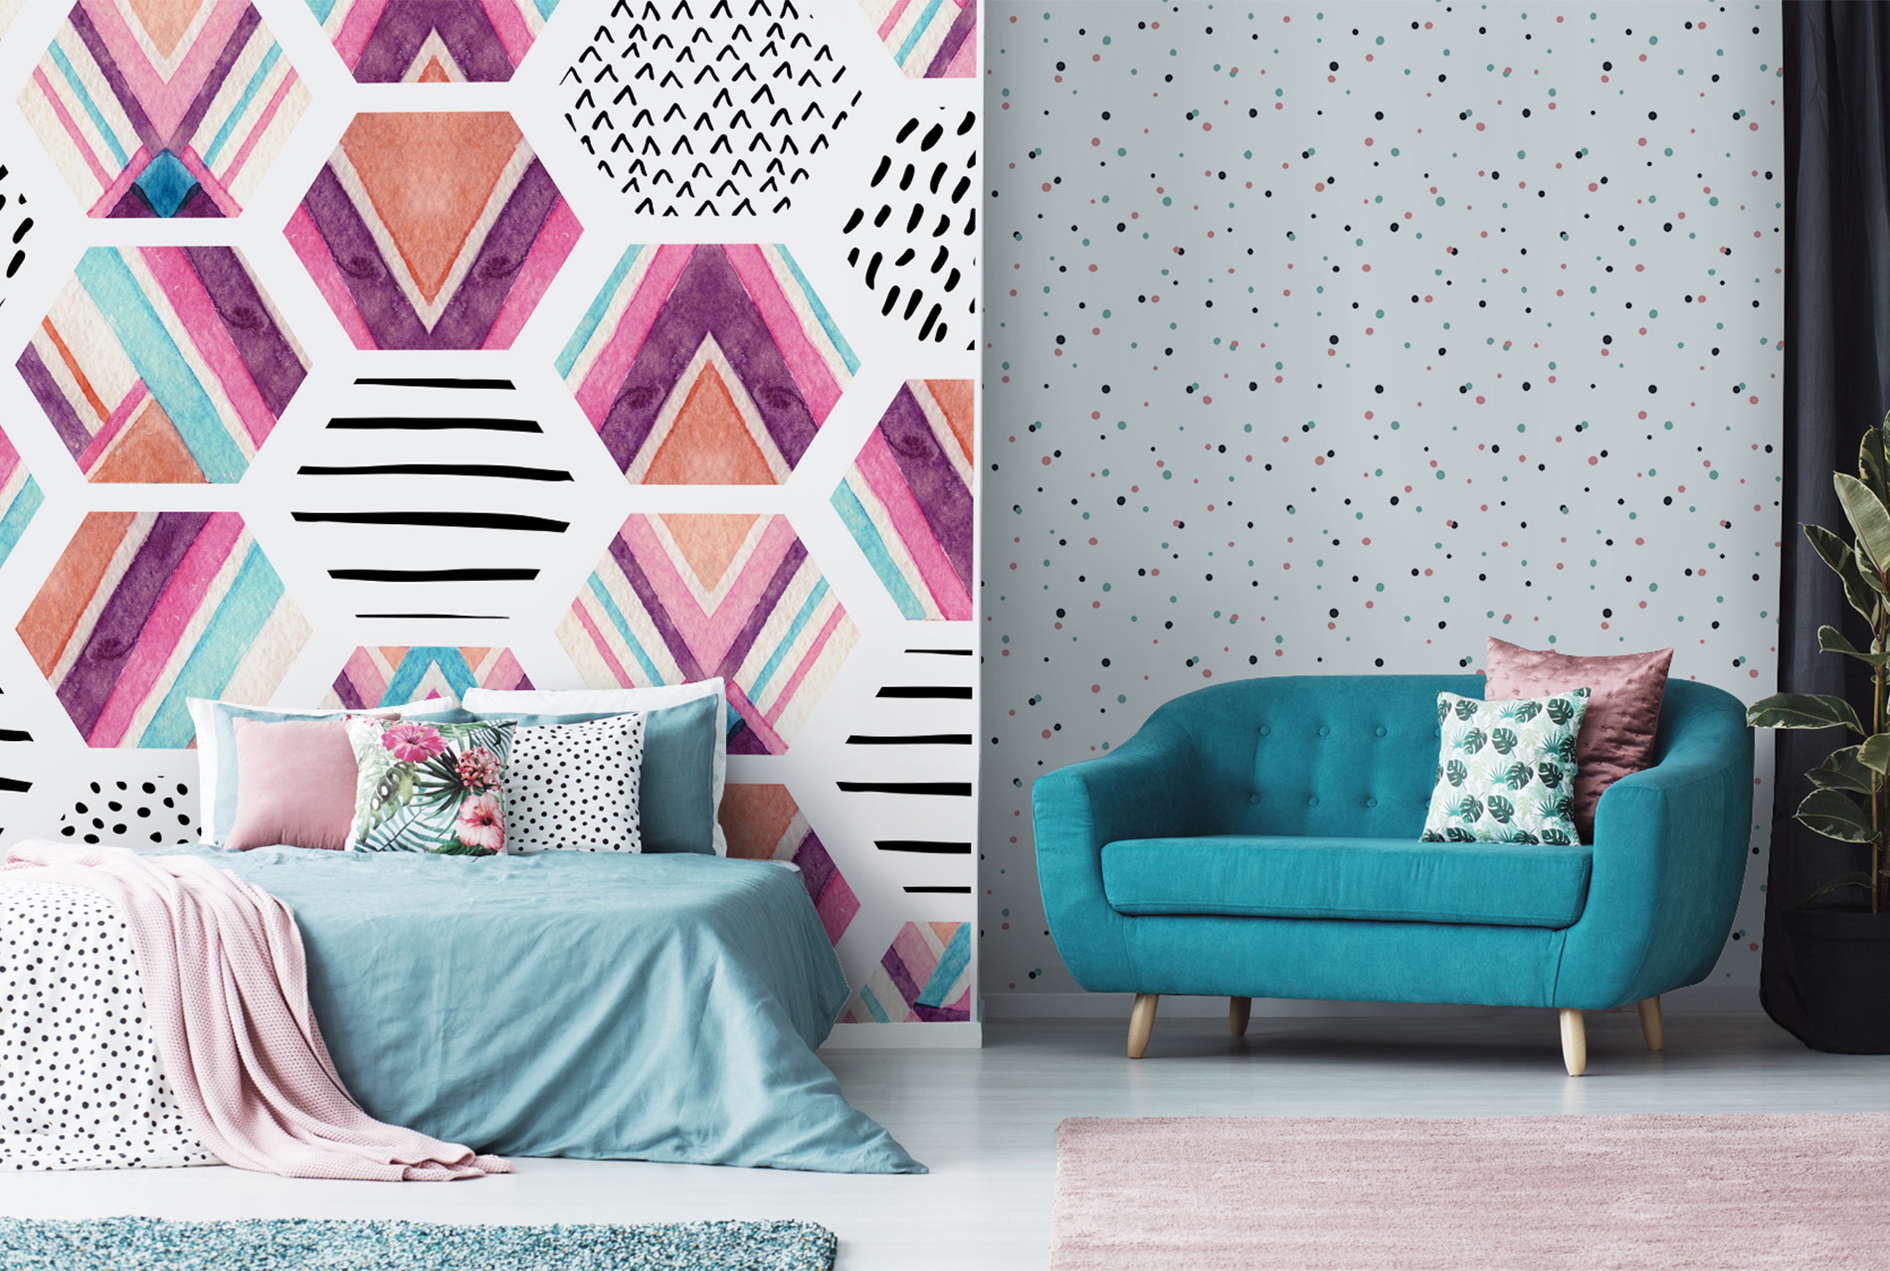 Watercolor Hexagon Seamless Pattern Wallpaper, Vinyl Custom Made, from £29, Pixers.co.uk (Pixers/PA)